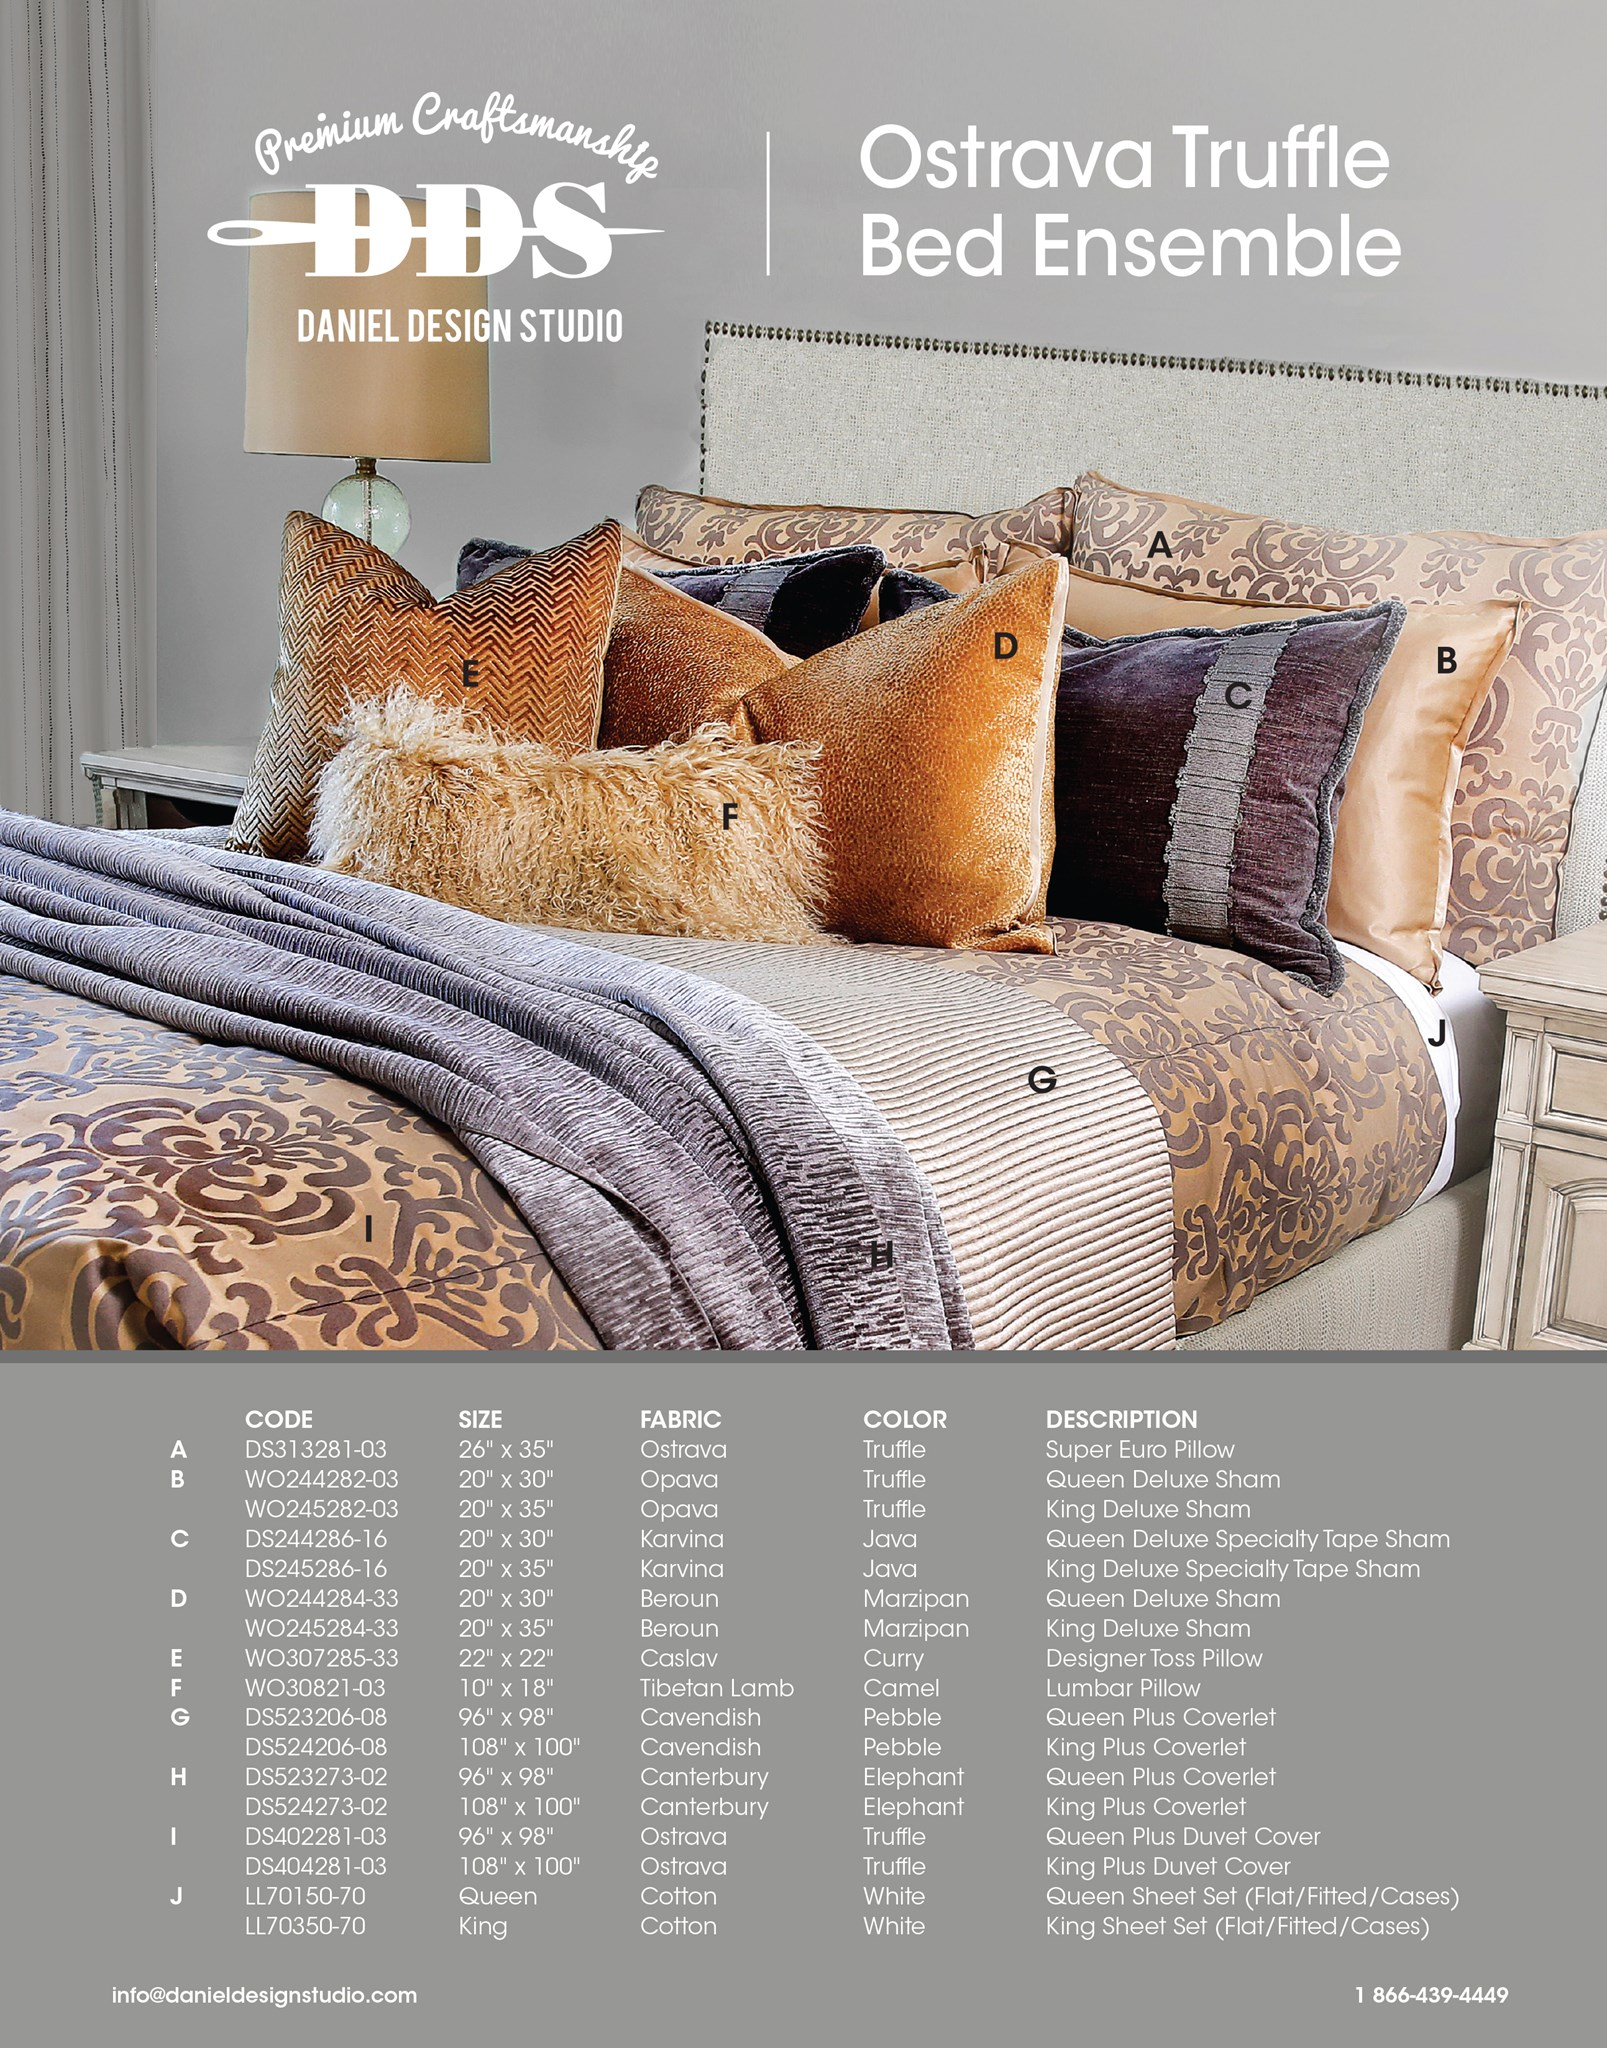 Ostrava Truffle Bed Ensemble Page 1